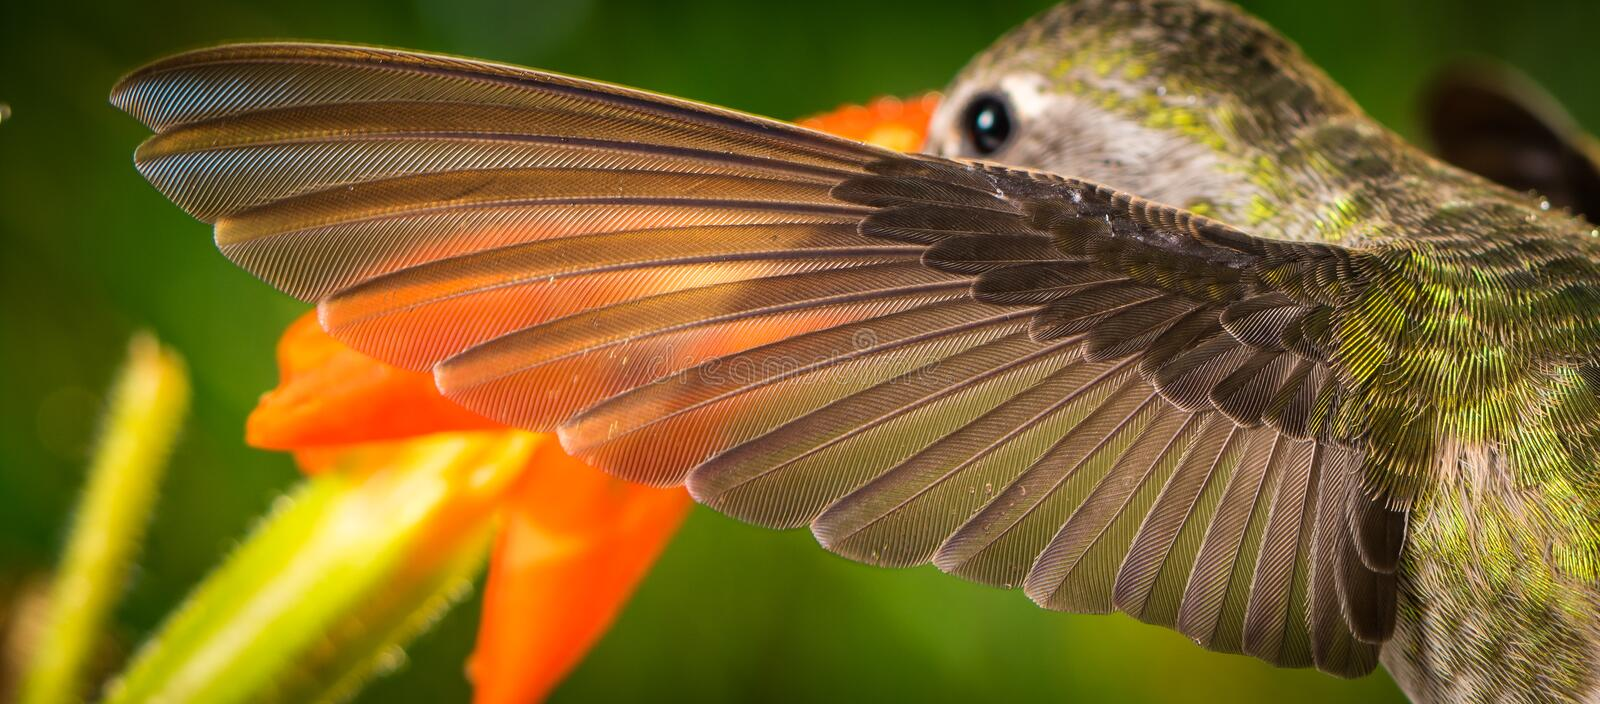 The perfect left wing of a hummingbird. This is a photograph of the perfect left wing of a hummingbird royalty free stock images